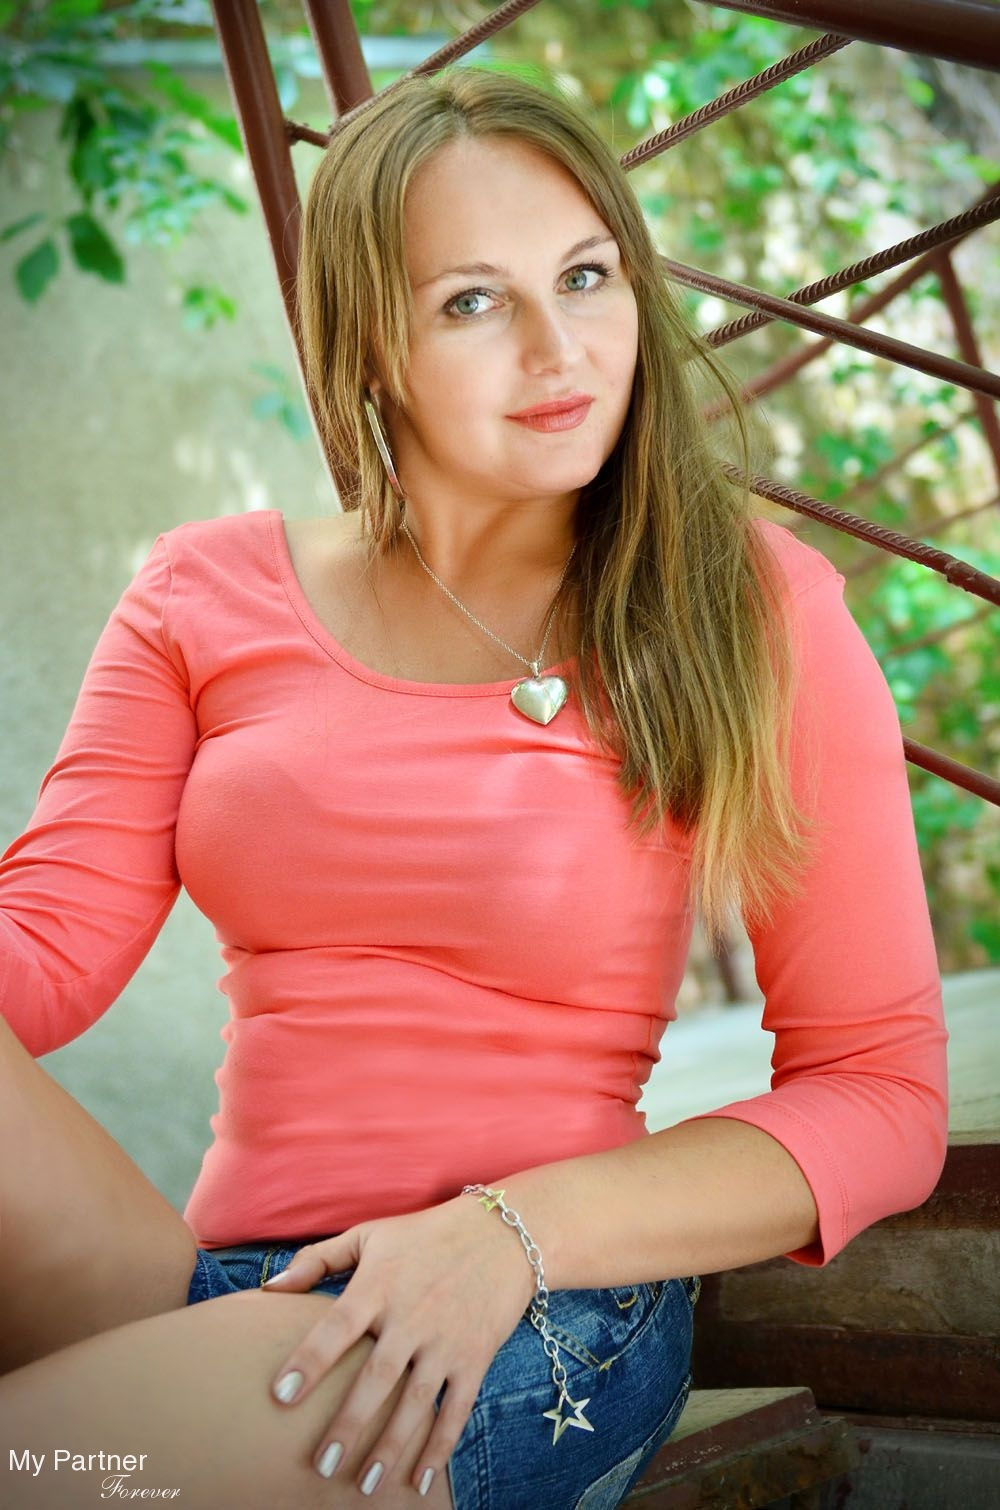 Ukraine Women Gorgeous Soft & Independent